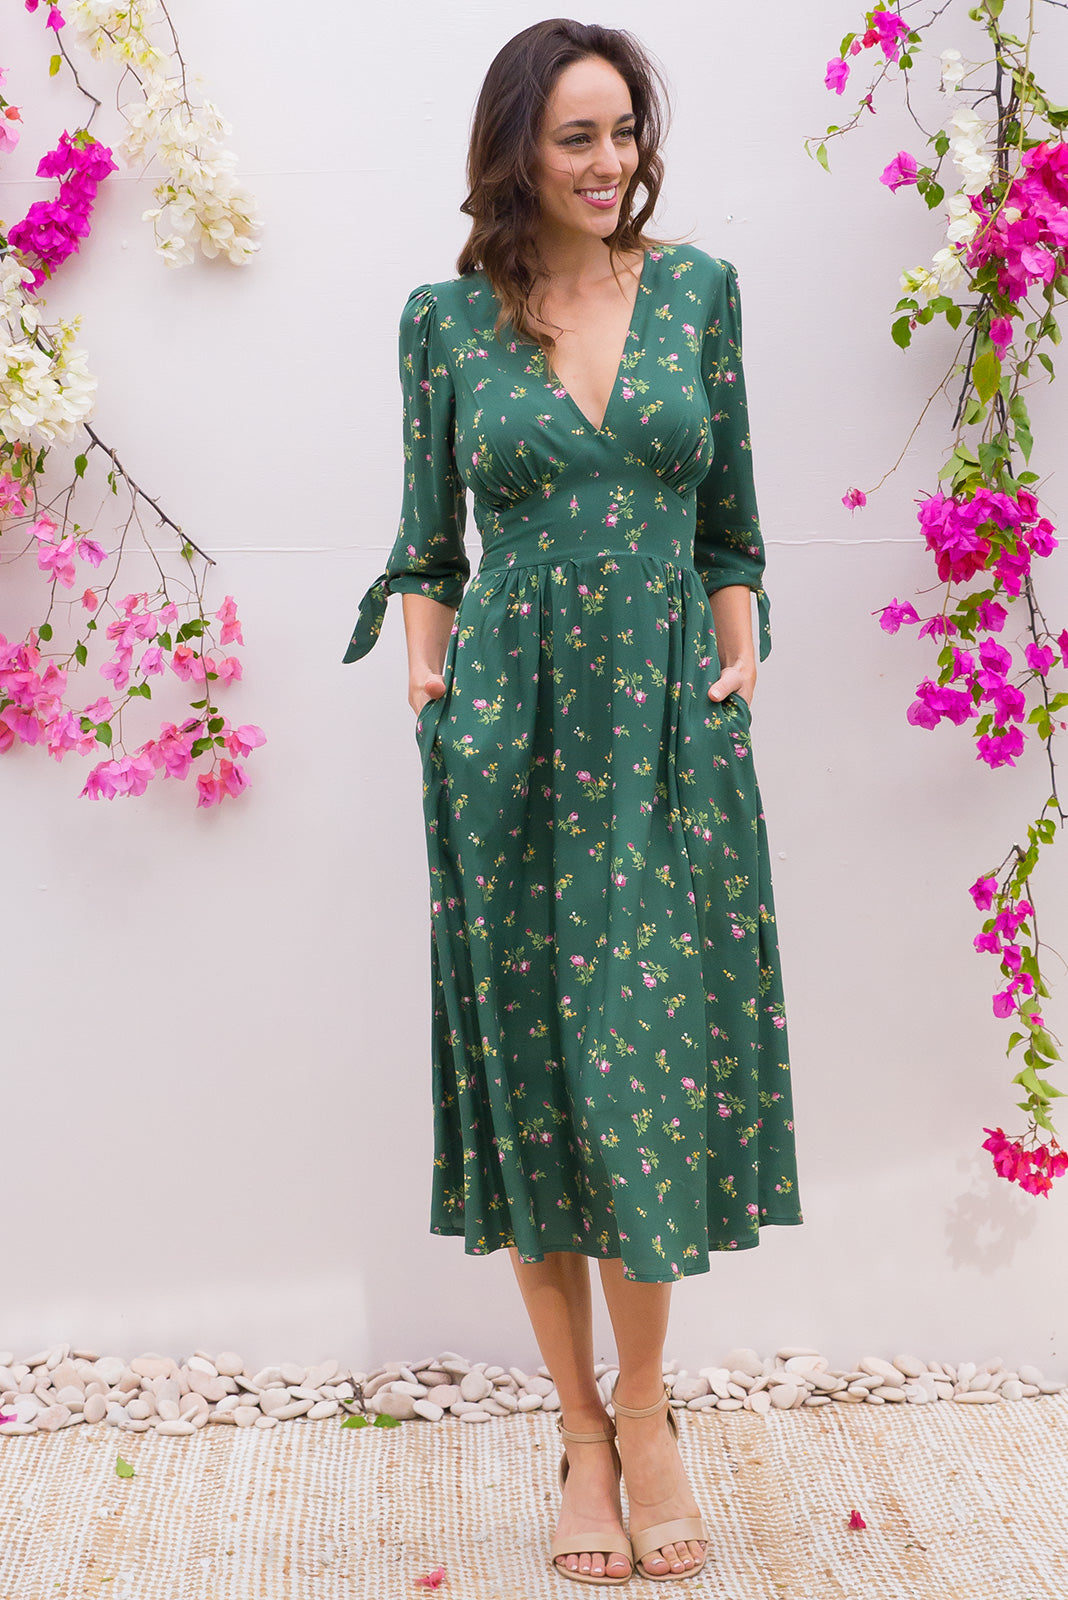 Henrietta Greenhouse Midi dress features a vintage inspired fitted basque waist and elasticated waist with a midi sleeve and deep v neck the fabric is a soft woven rayon in a dusty green delicate floral print